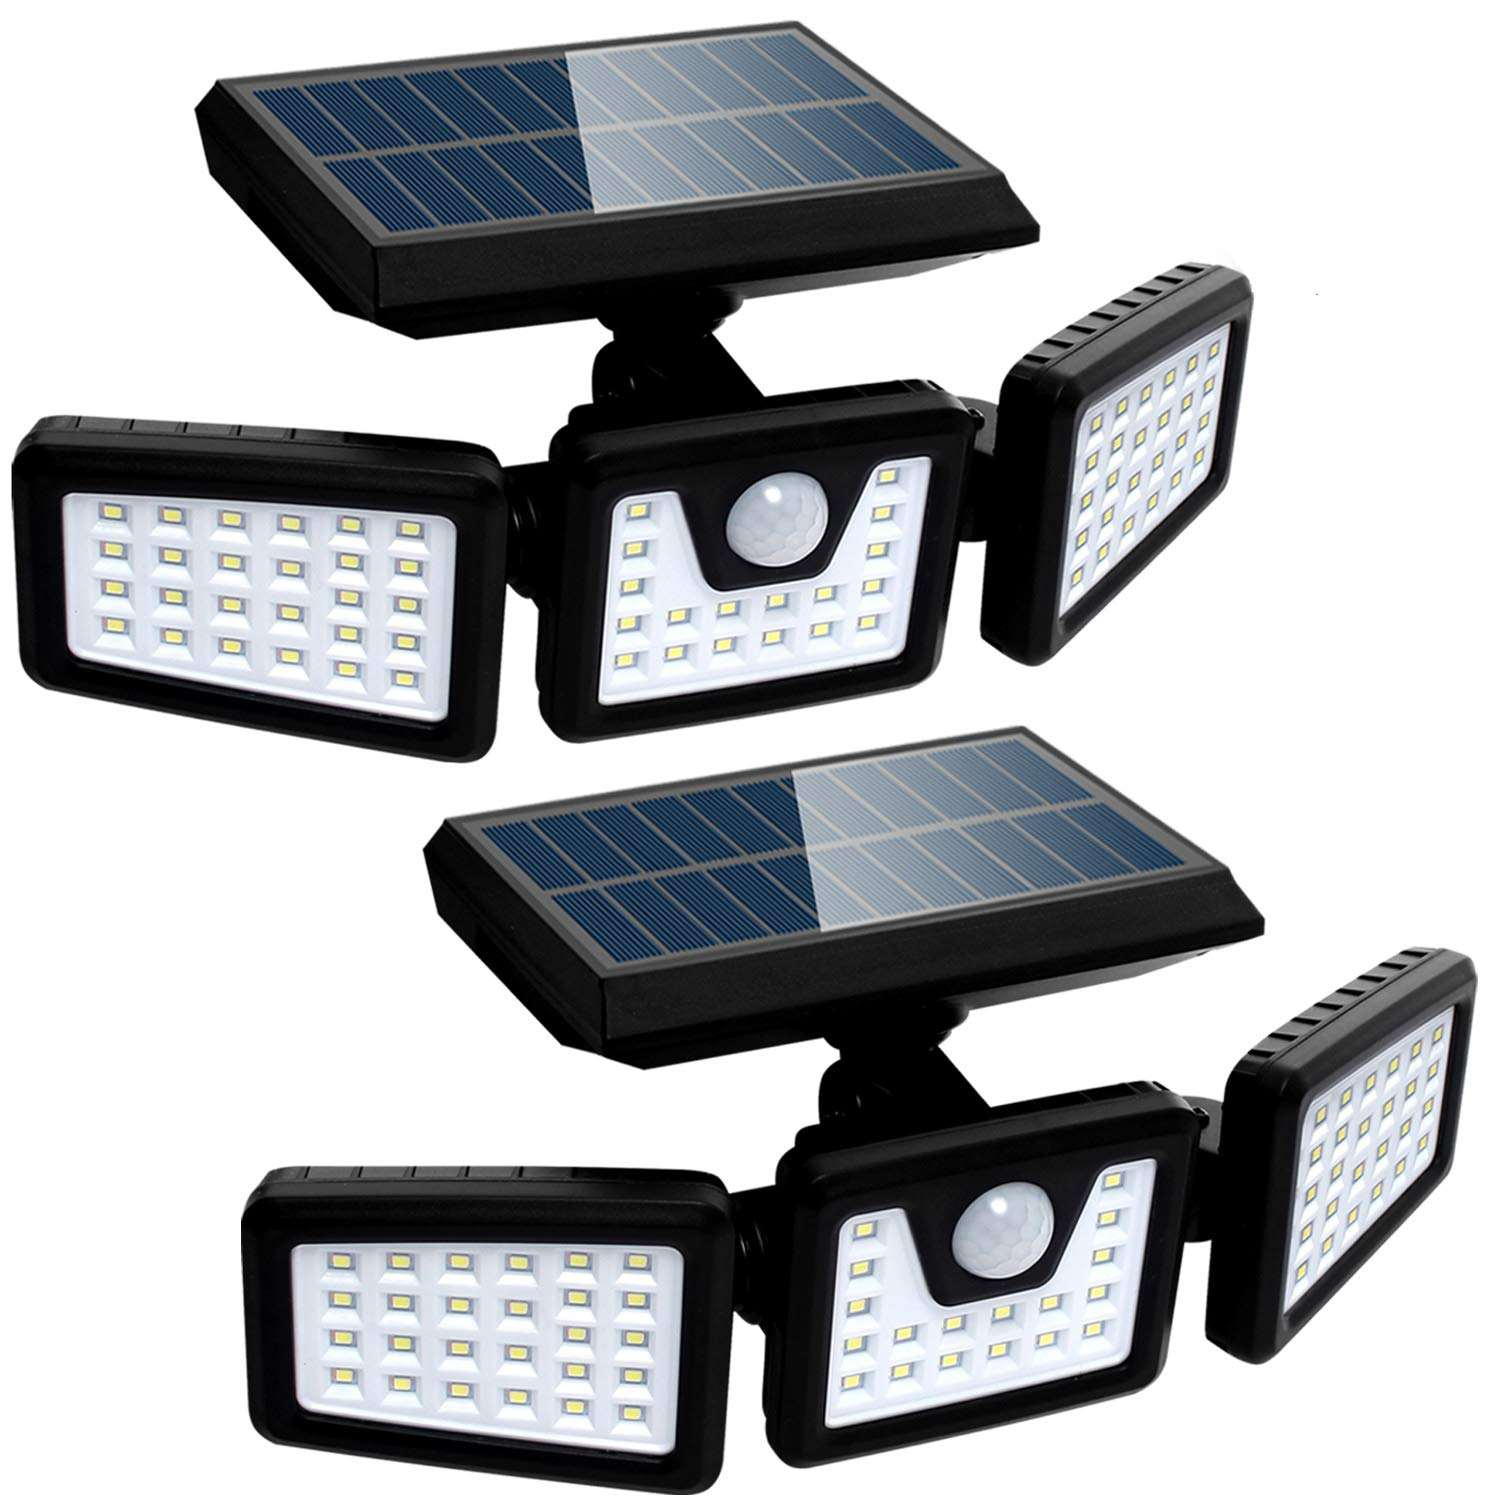 ABS Plastic High Quality Waterproof Solar Light Outdoor With Motion Sensor 3 Head Security Lights Solar Powered PIR Sensor Light